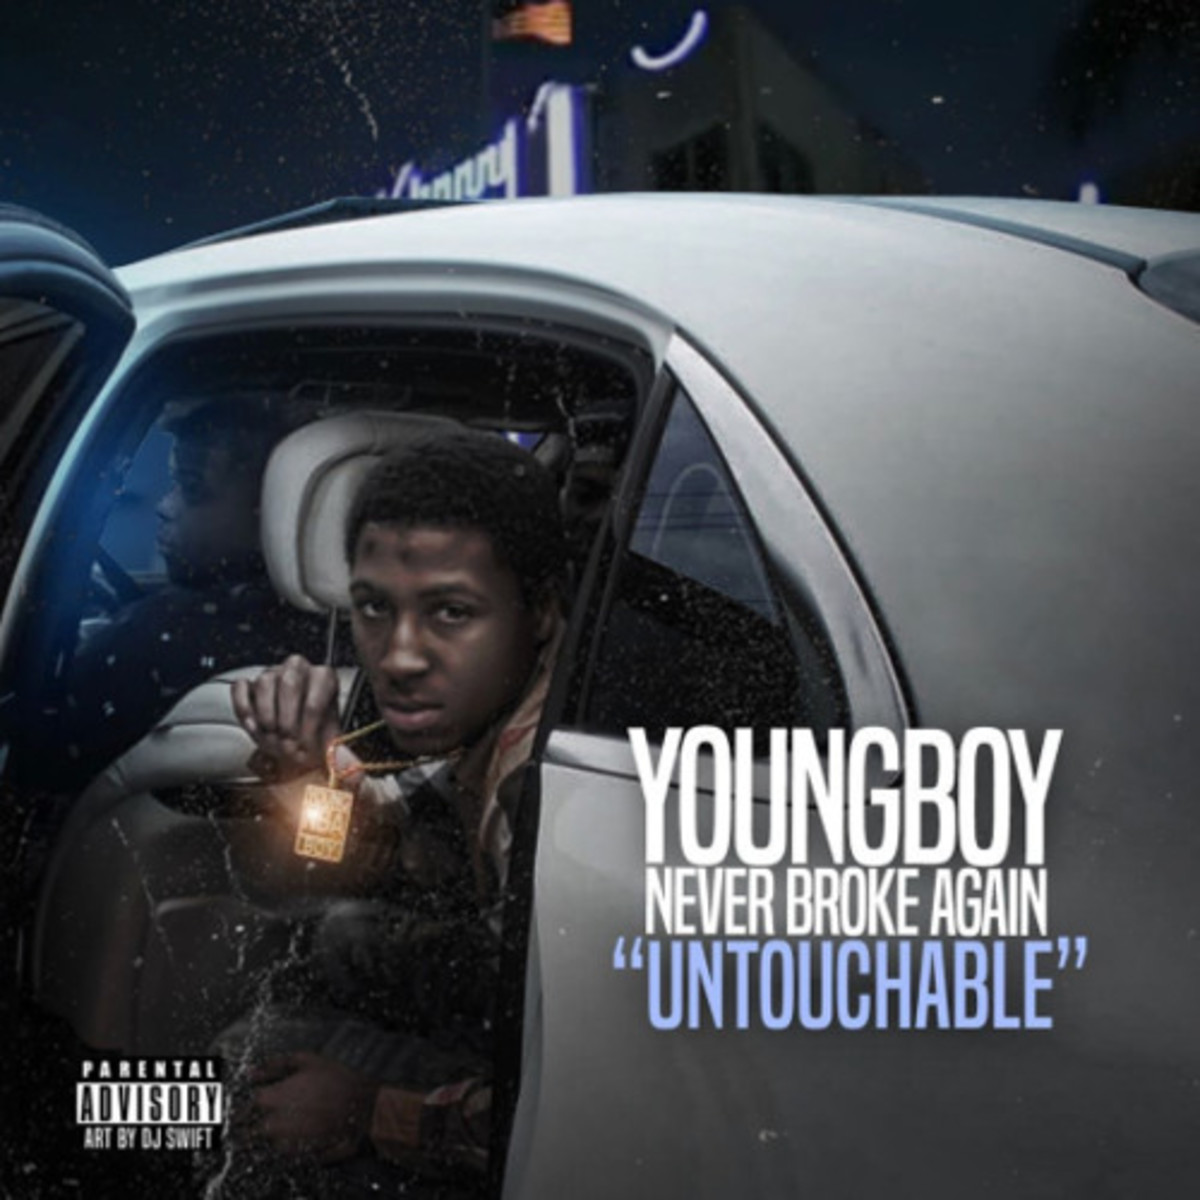 youngboy-never-broke-again-untouchable.jpg